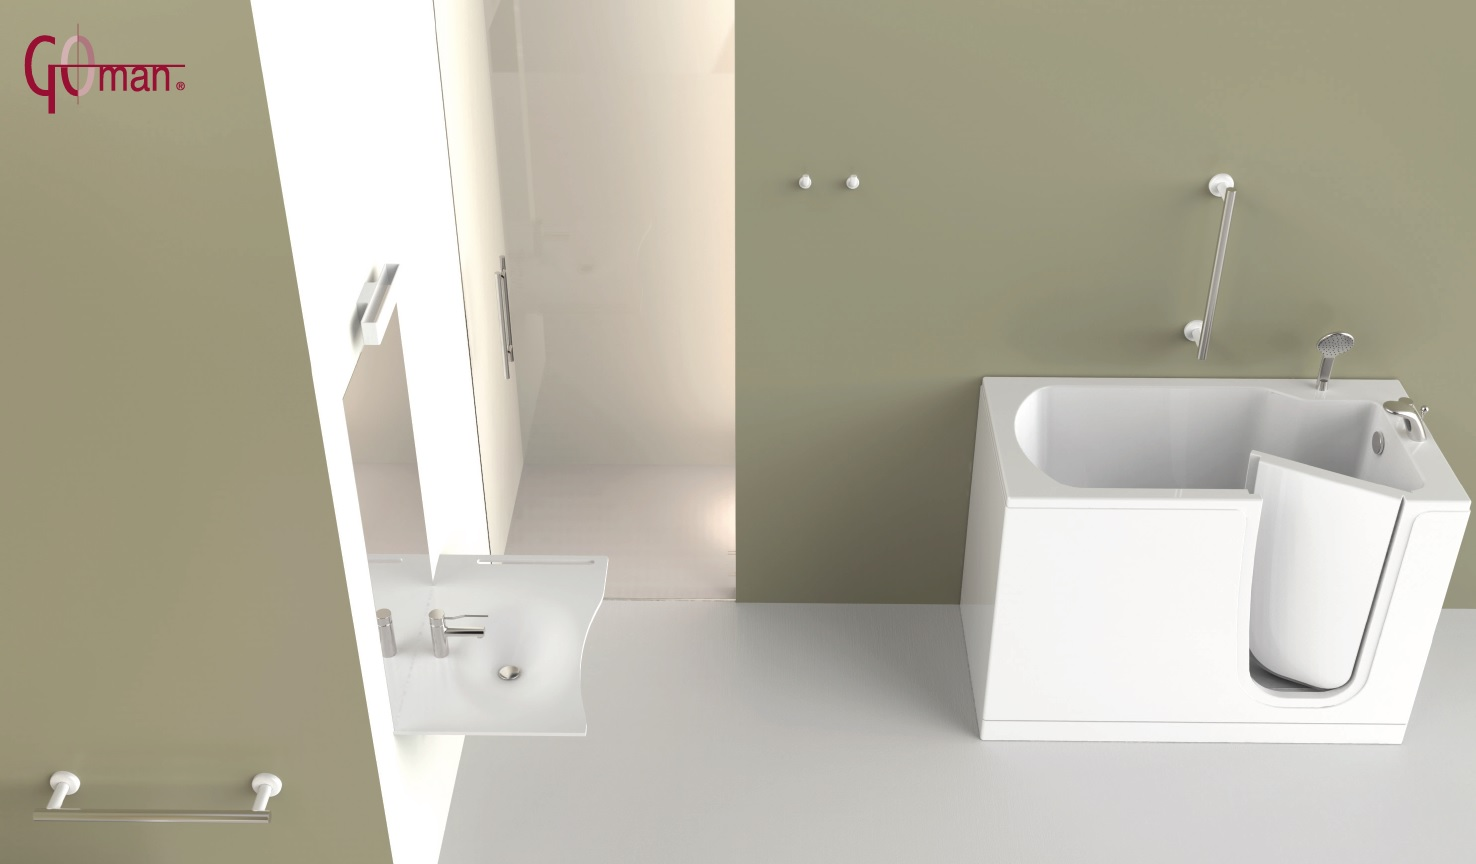 Goman - Bath Tubs w/ Doors